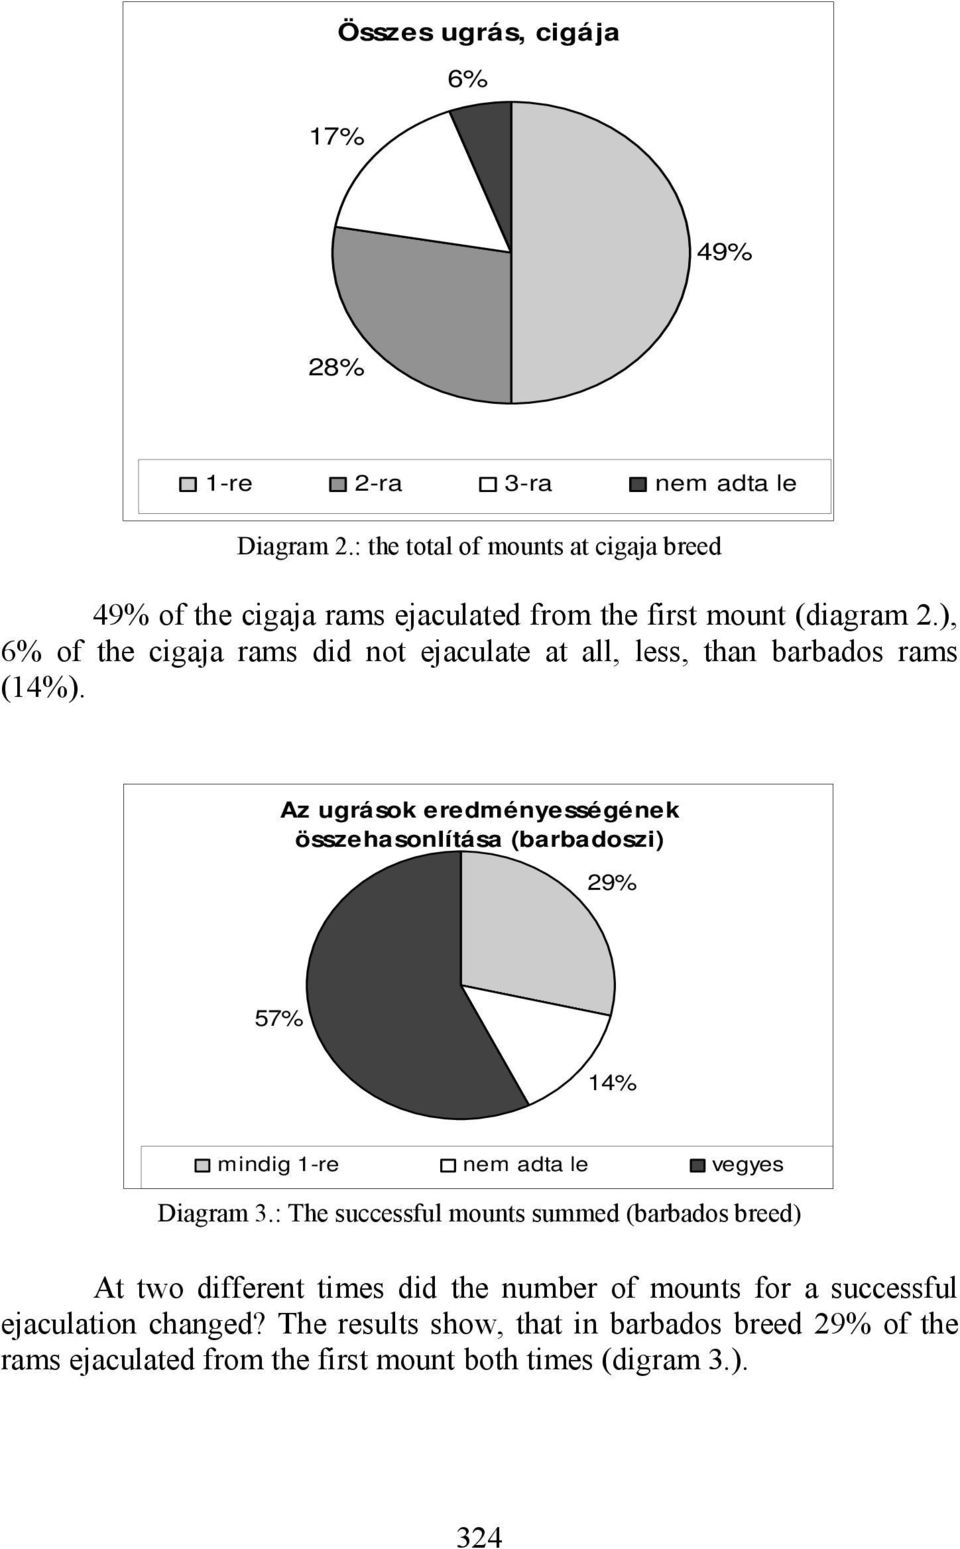 ), 6% of the cigaja rams did not ejaculate at all, less, than barbados rams (14%).